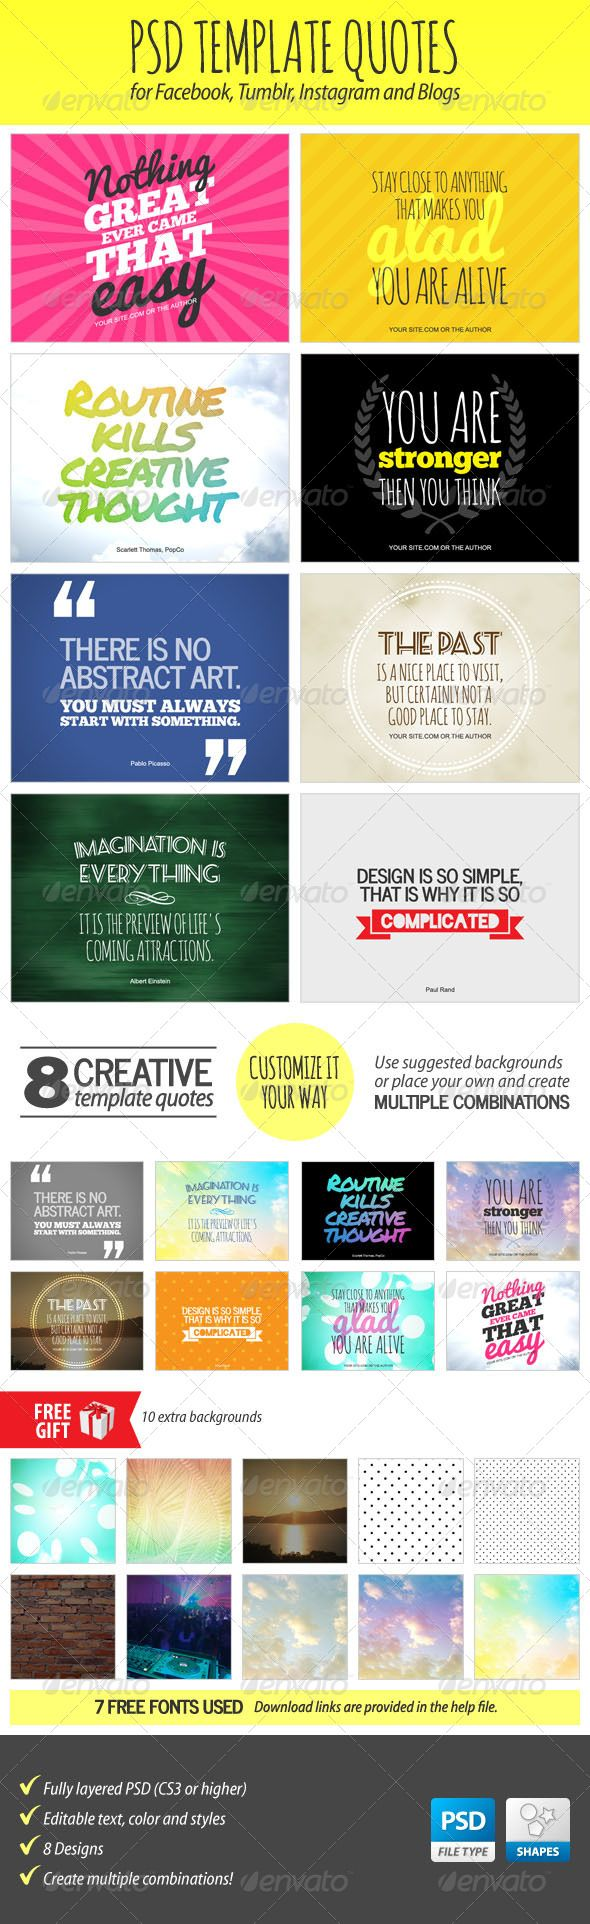 Psd template quotes instagram adobe and facebook for Social media template psd